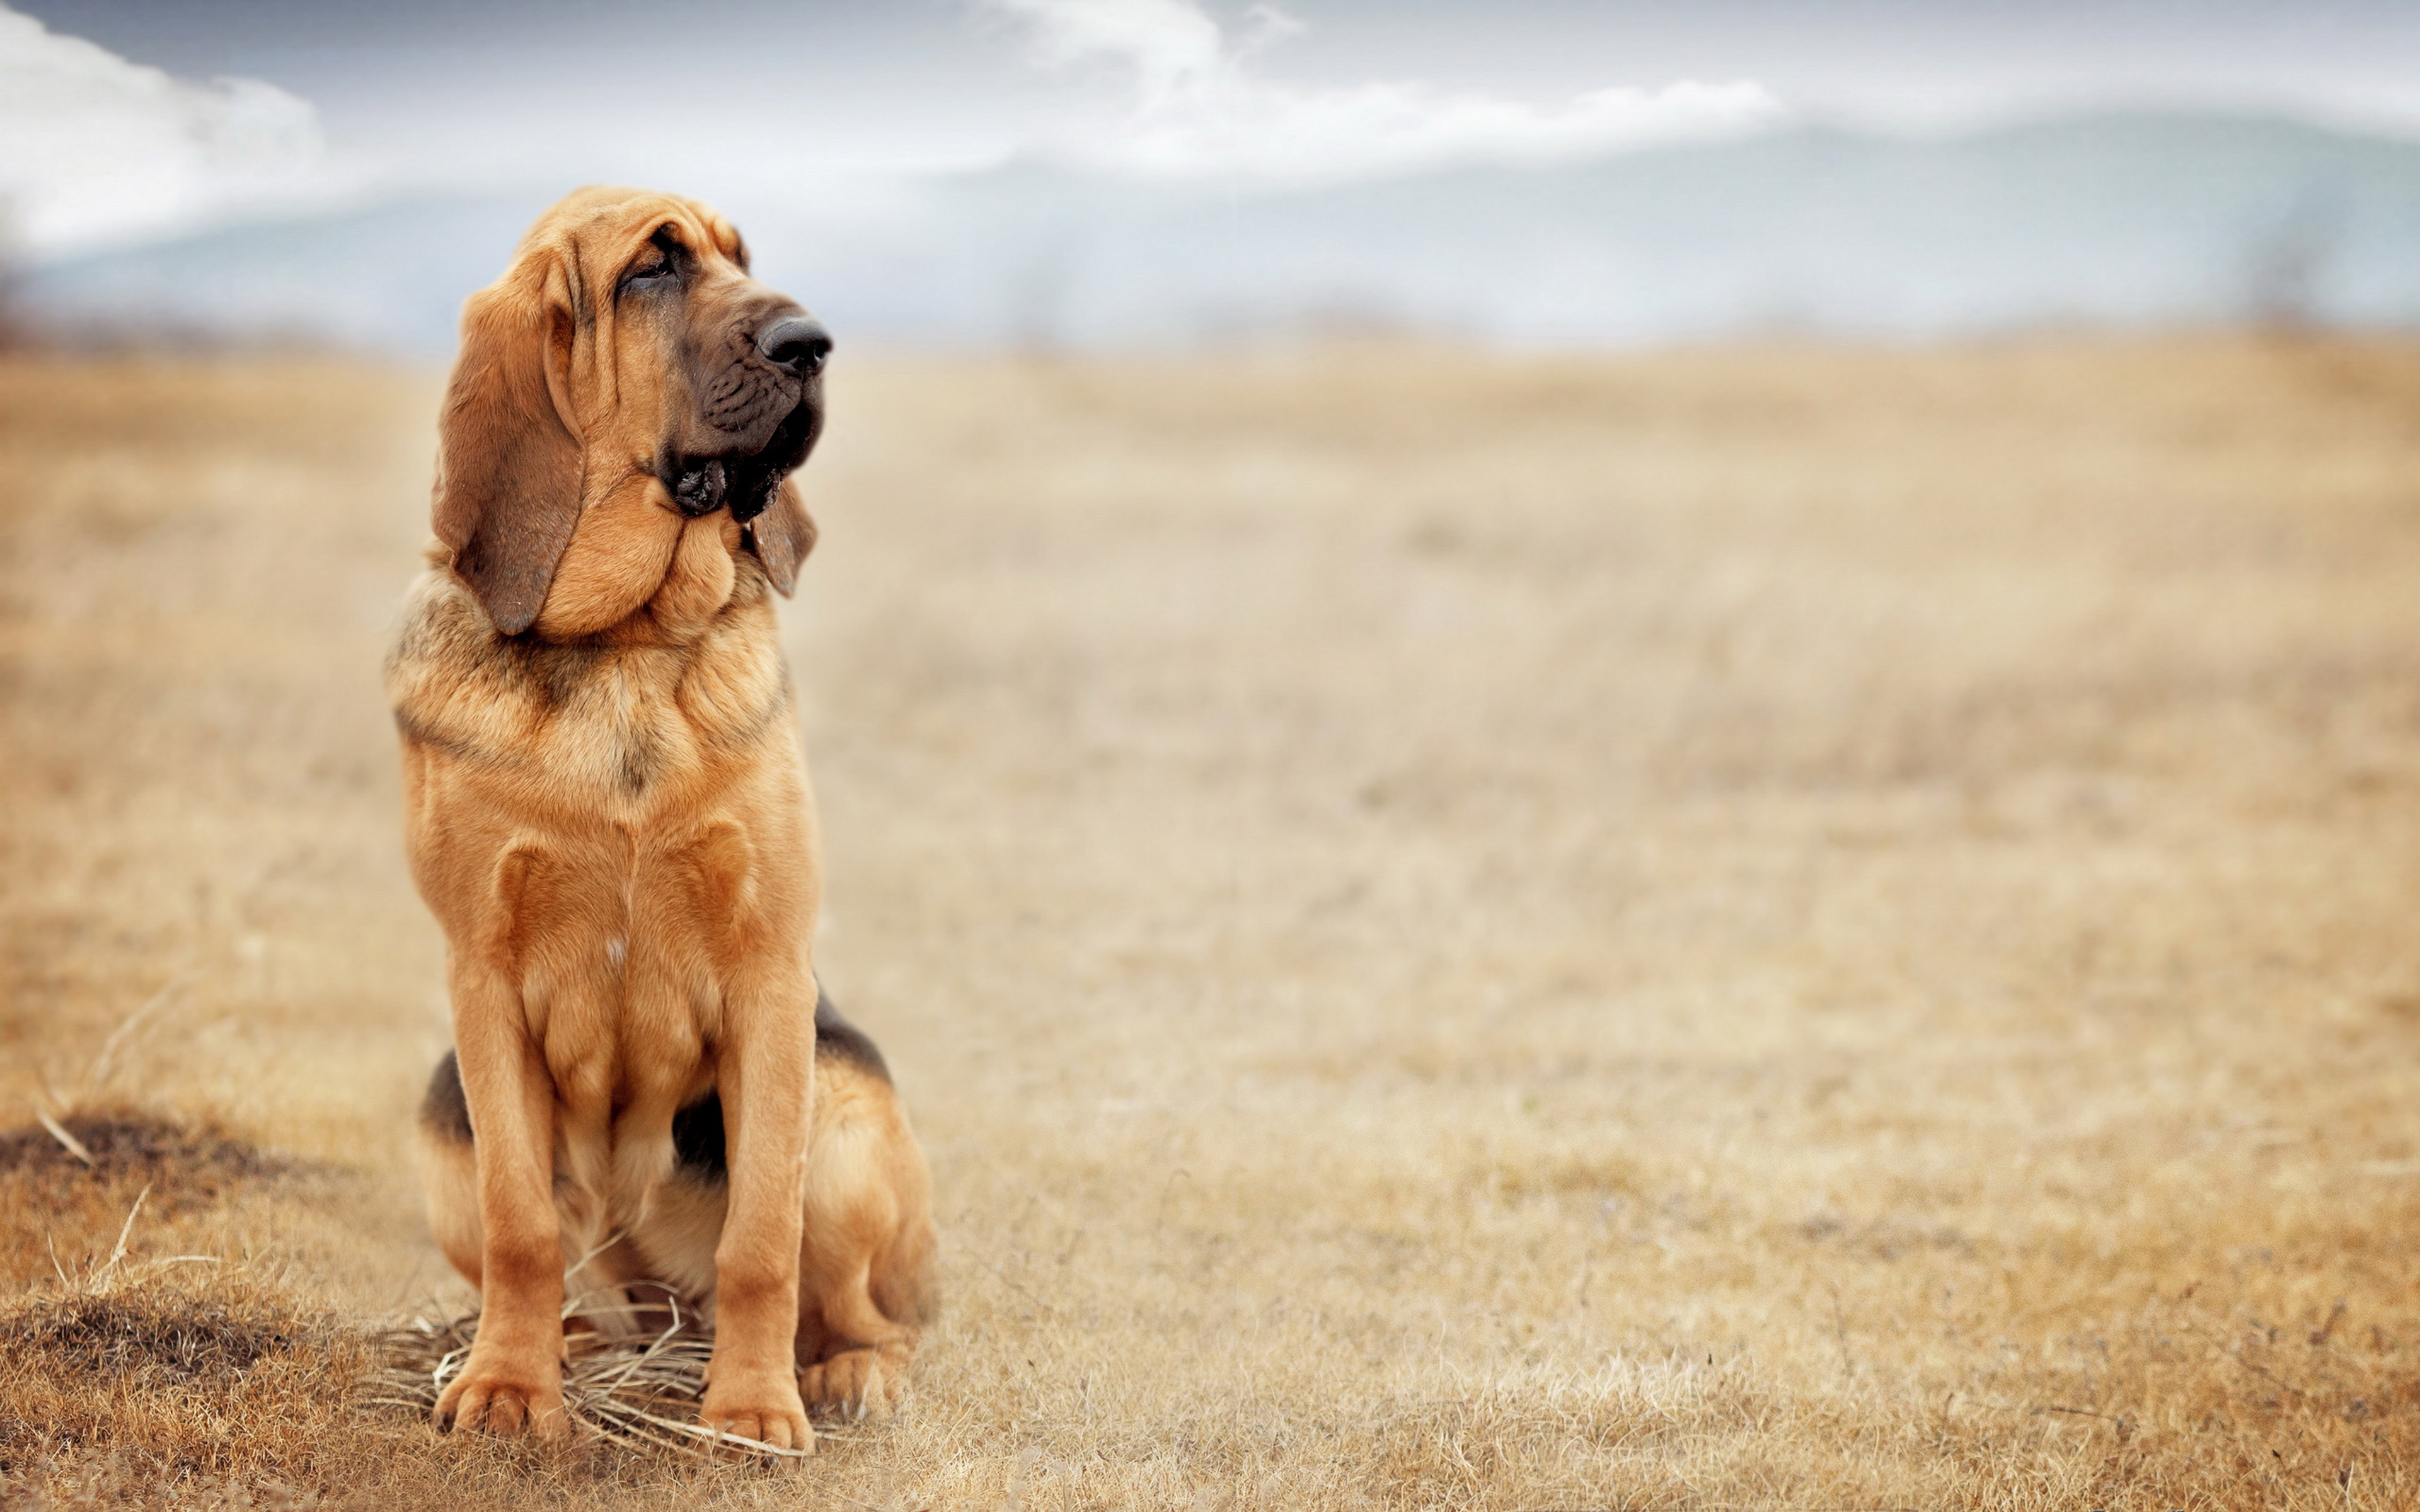 5 HD Bloodhound Dog Wallpapers 3840x2400